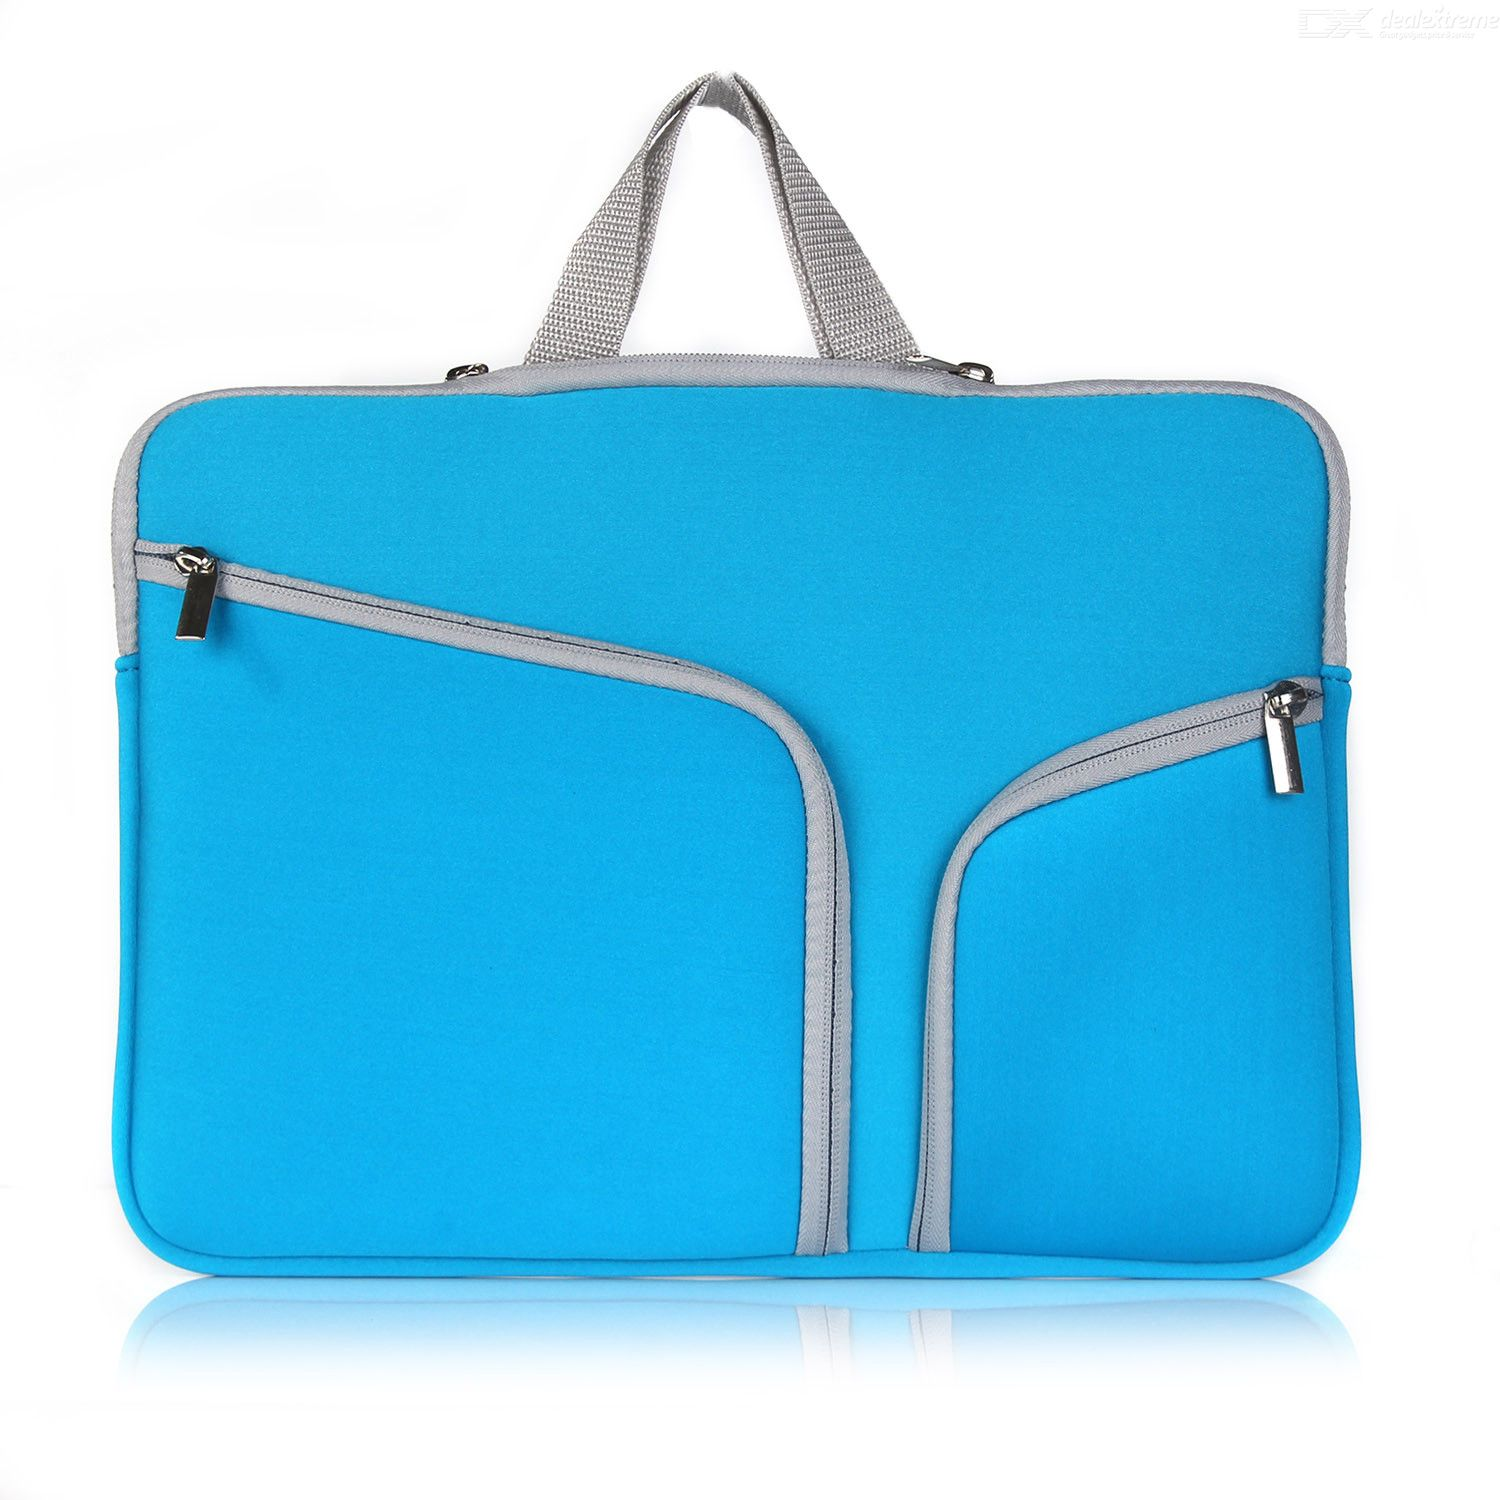 Dayspirit-Double-Zipper-Laptop-Sleeve-Bag-Case-For-Macbook-Pro-Retina-154